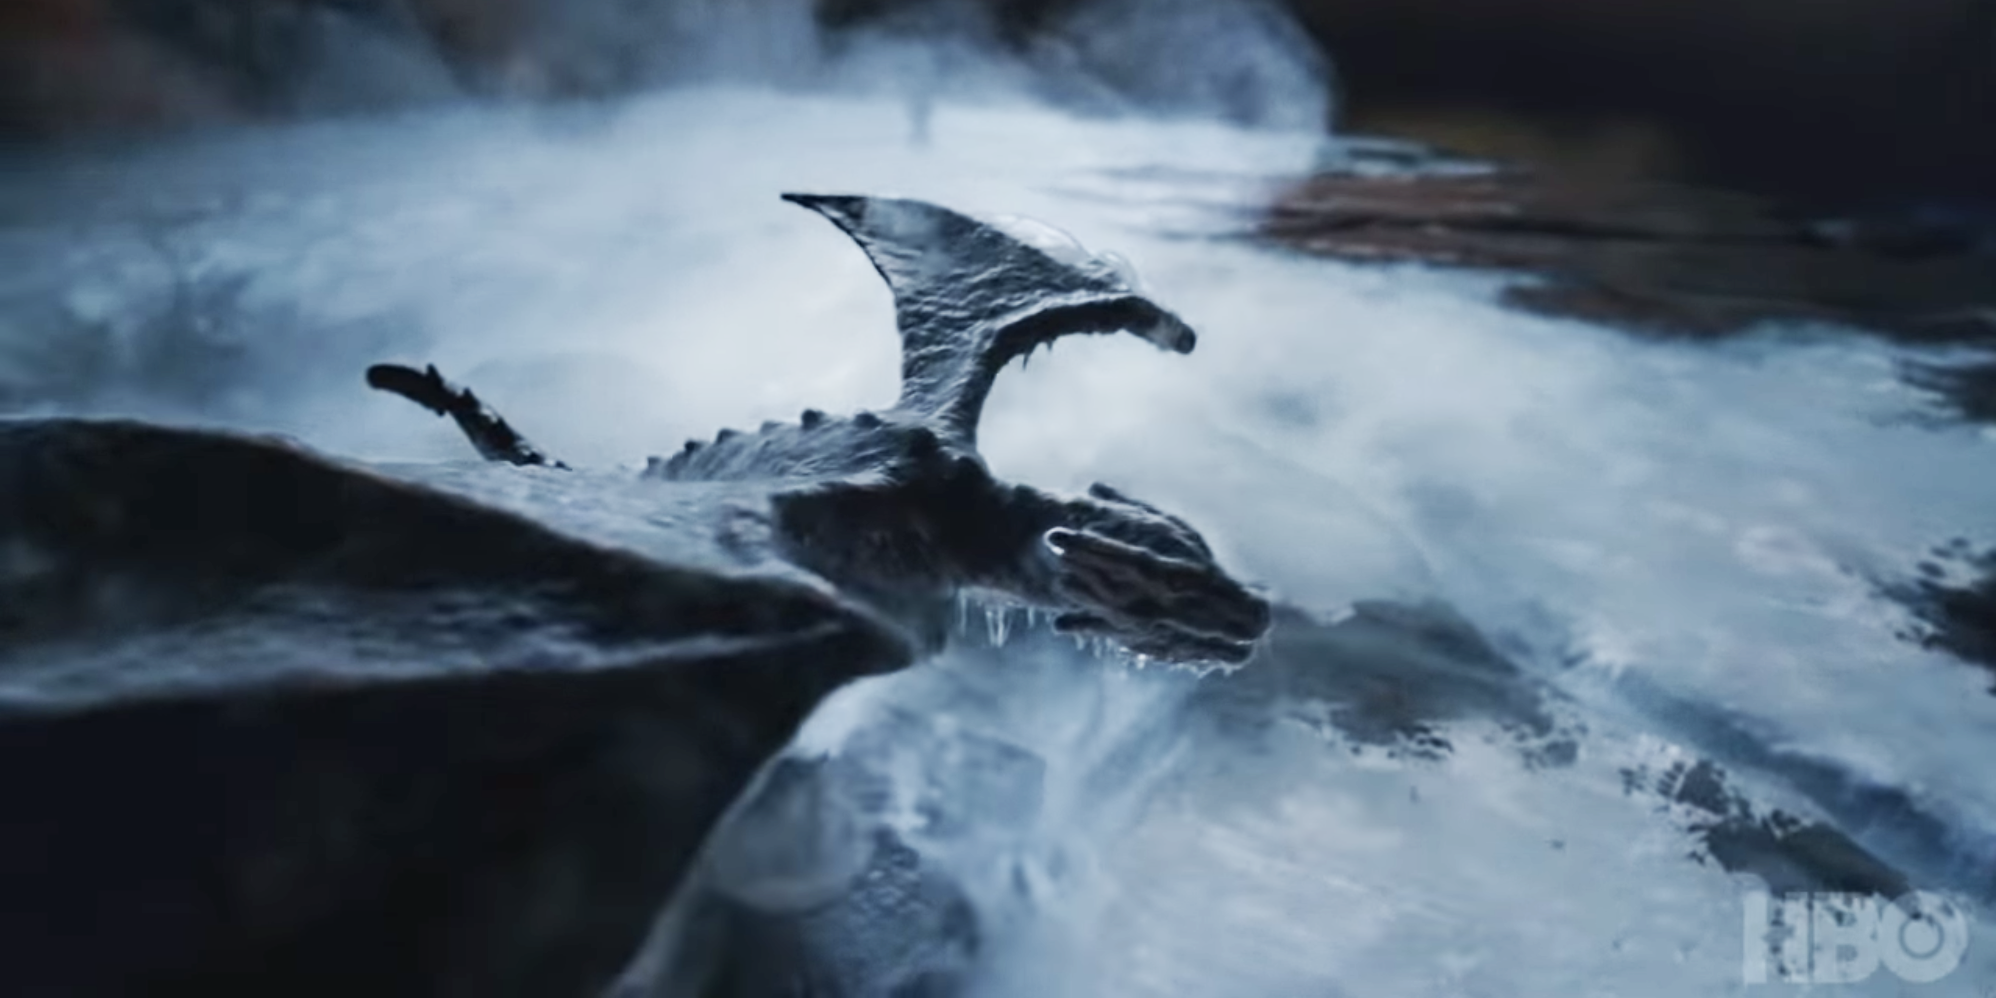 'Game of Thrones' Fans Already Have Major Theories from the Teaser